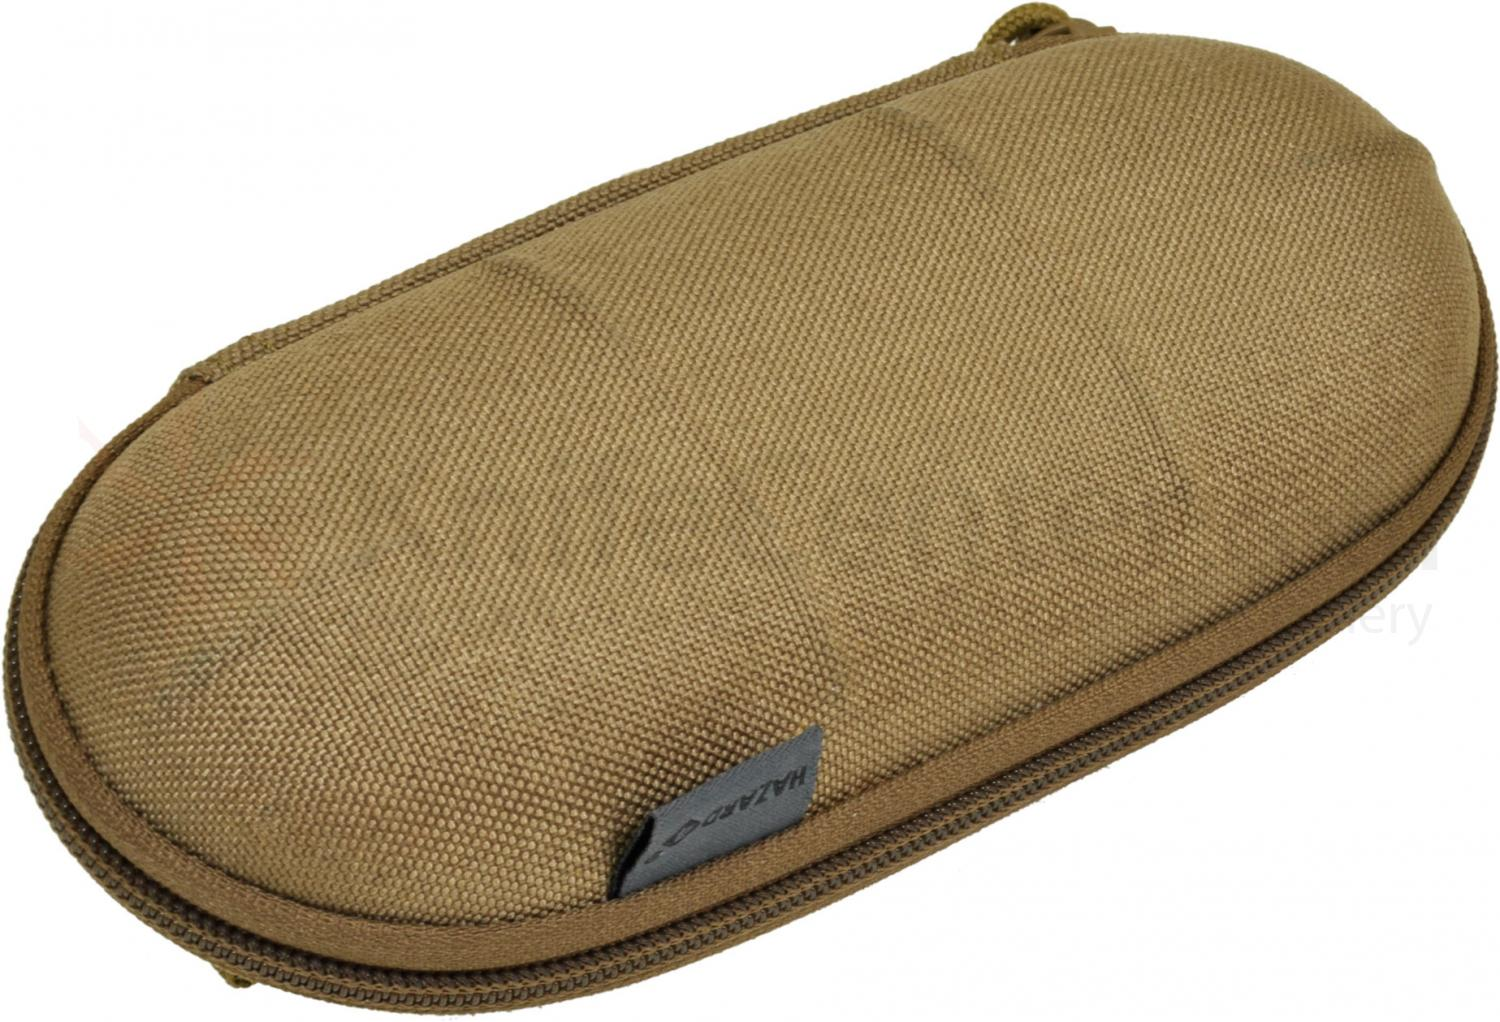 Hazard 4 Sub-Pod Large Sunglasses Hard Case, Coyote (1000D Cordura)